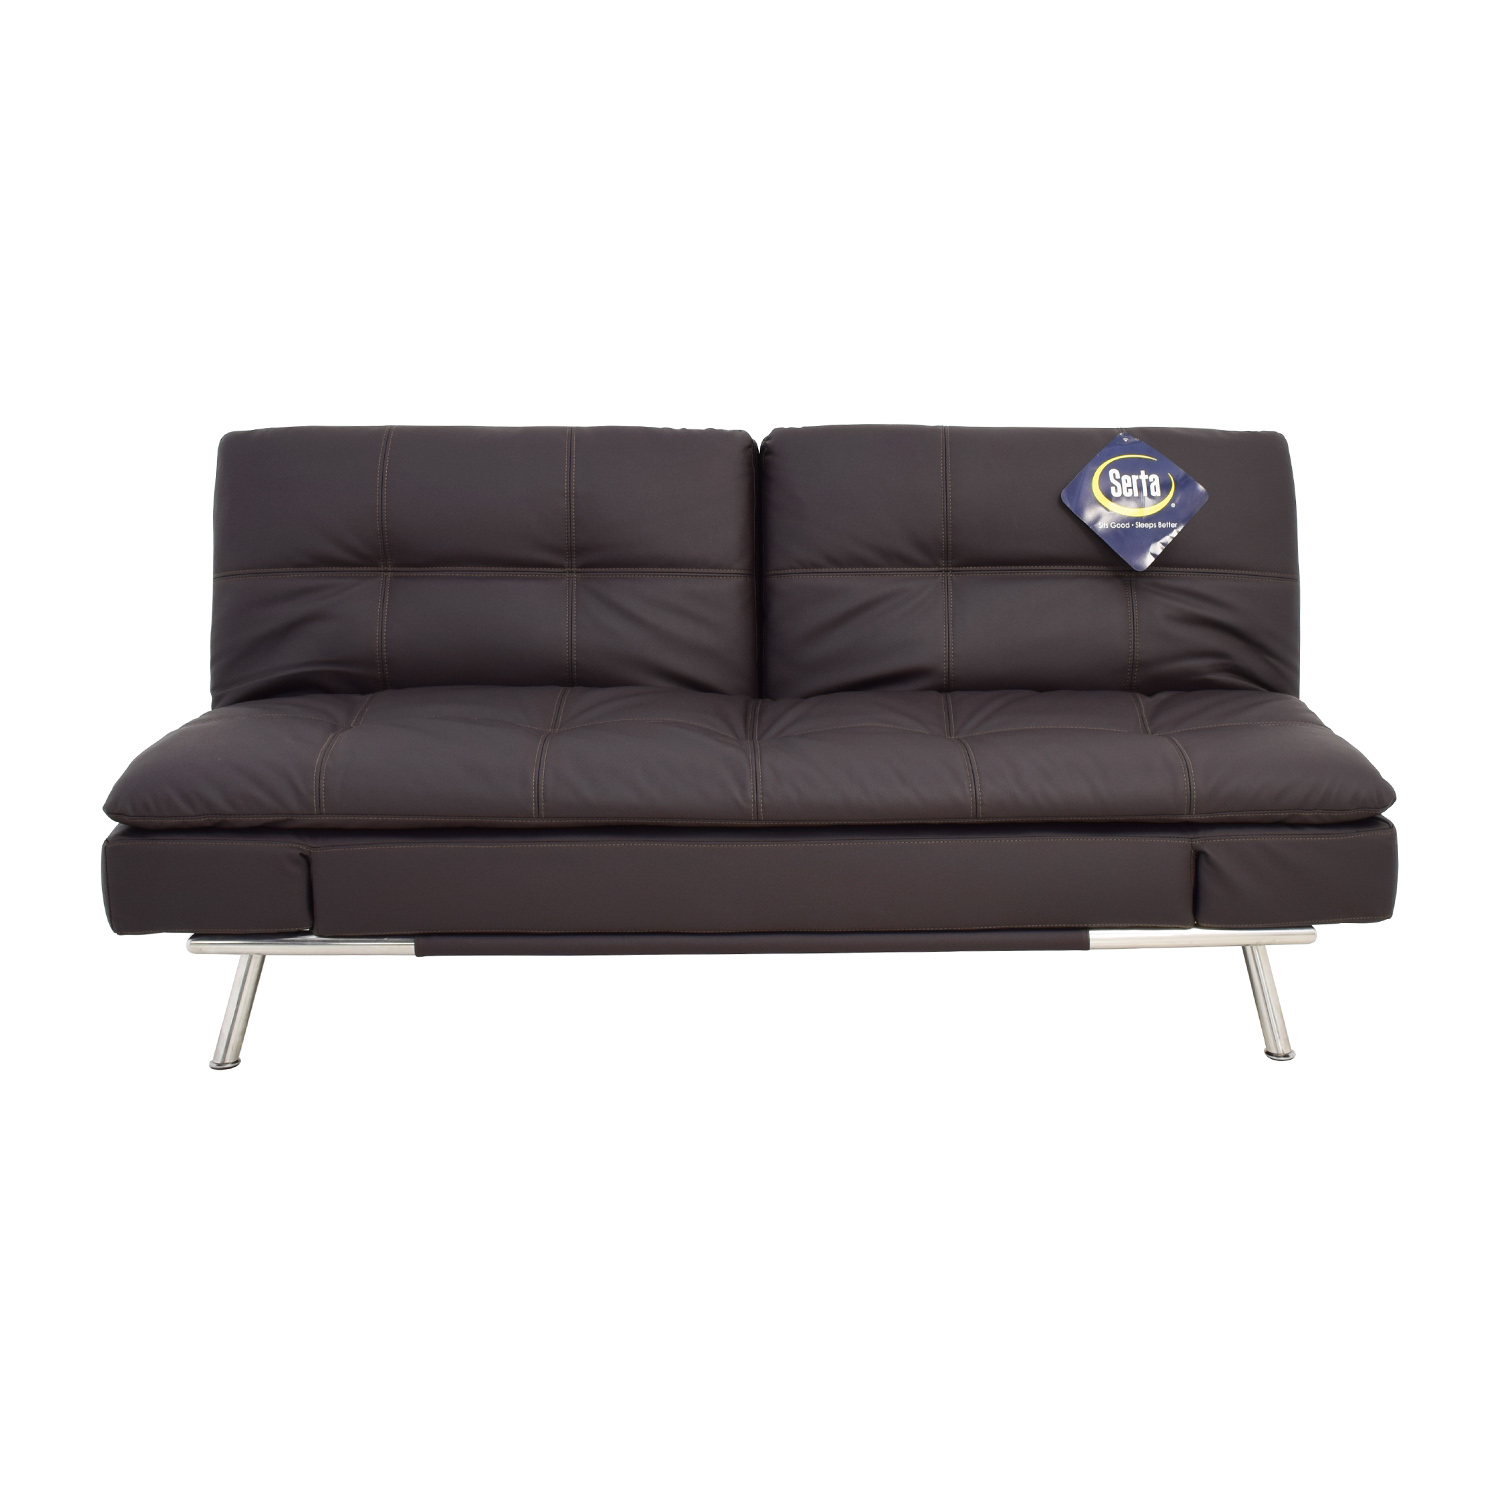 shop Lifestyle Solutions Serta Matrix Leather Sleeper Sofa Lifestyle Solutions Serta